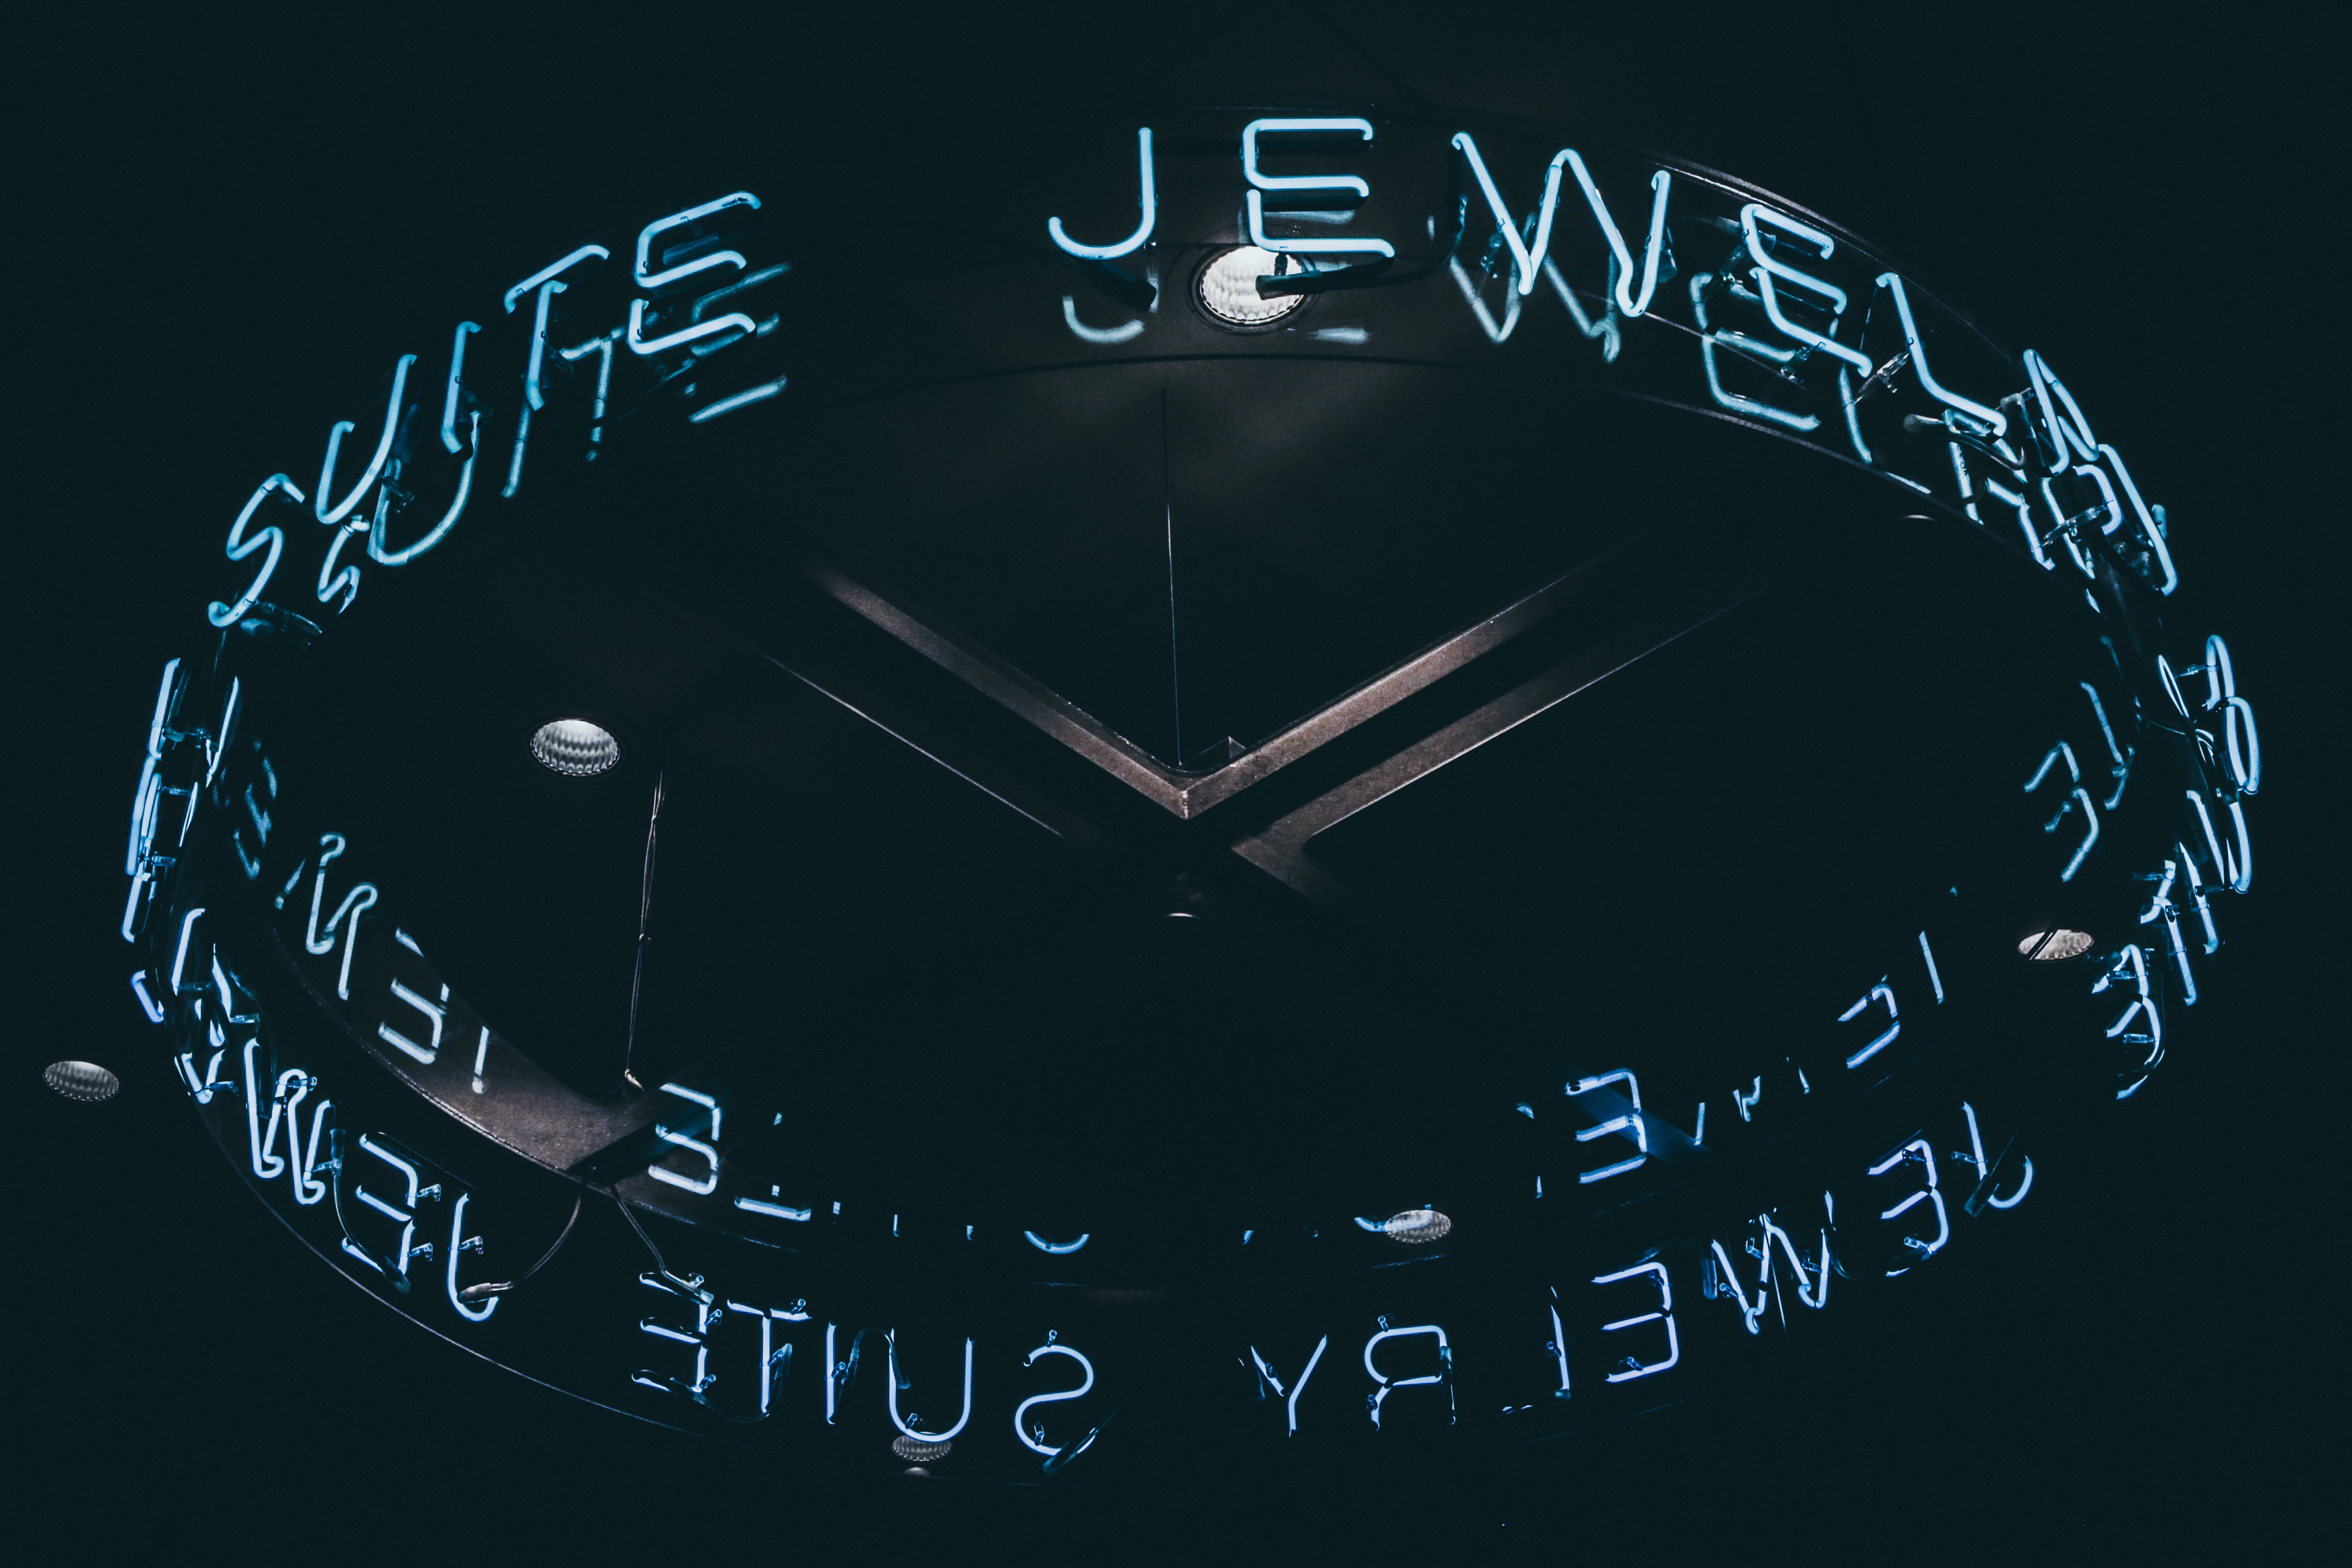 Jewelry suite lighted neon signage